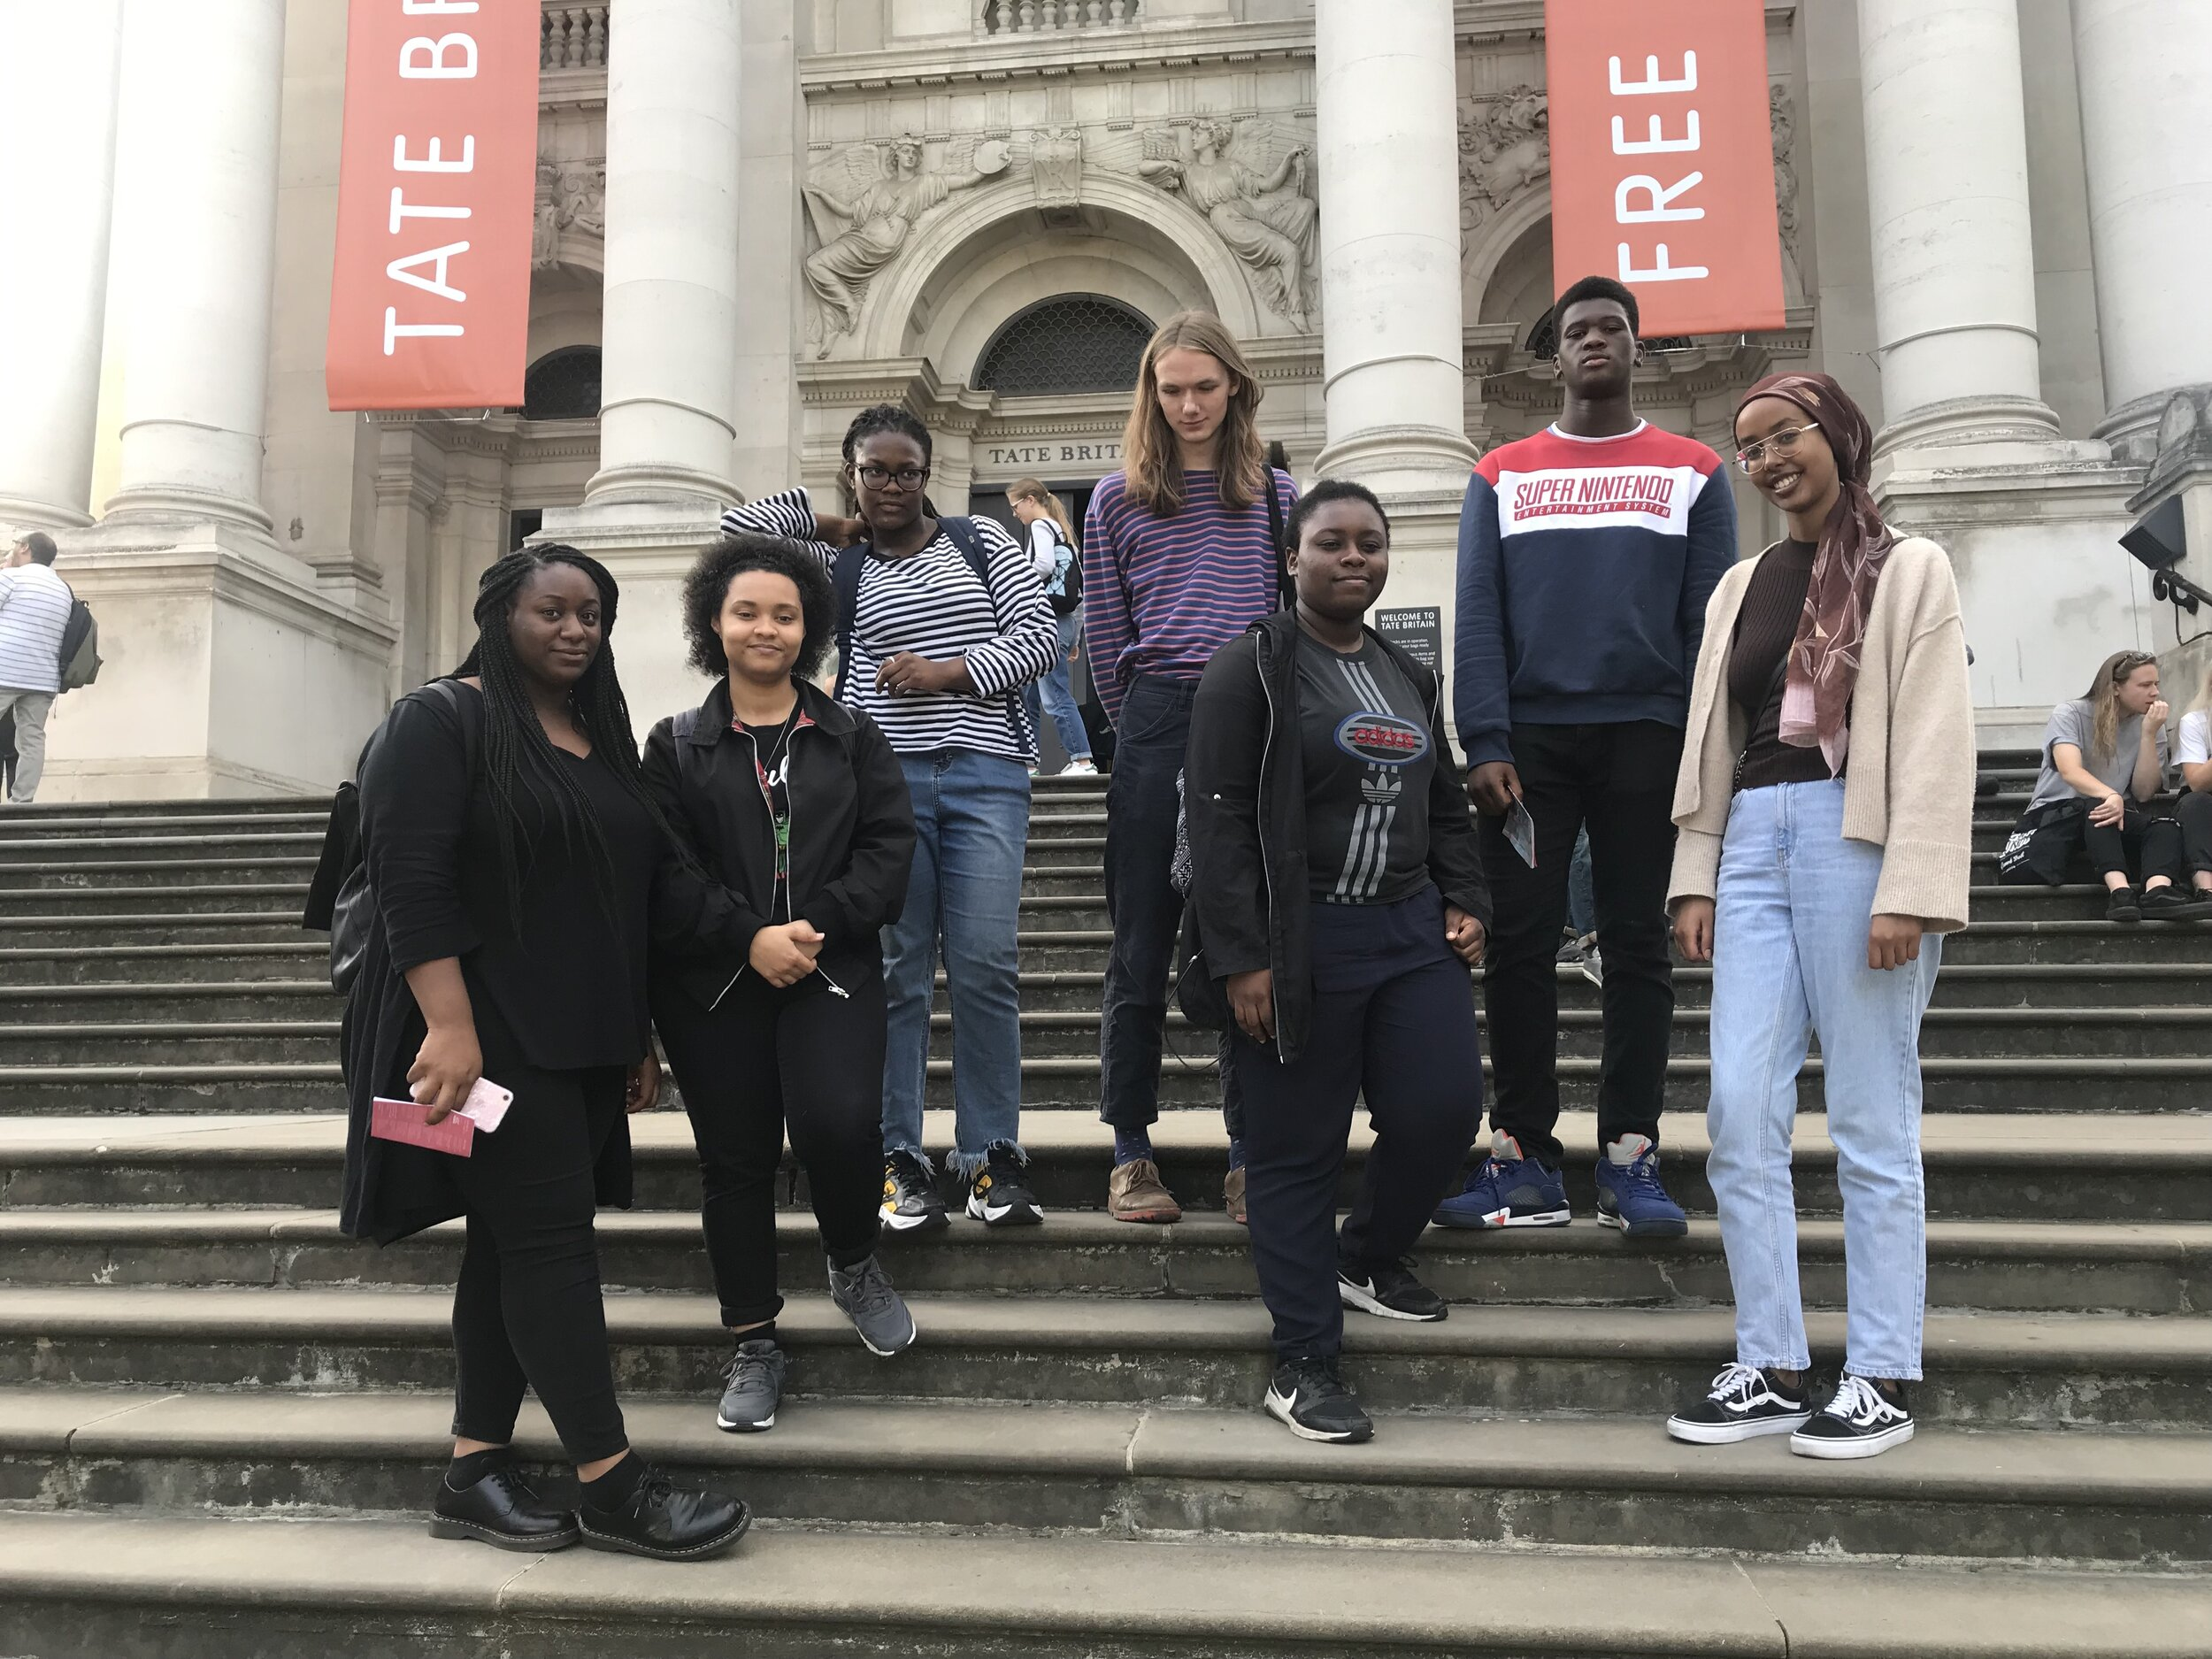 Our PEER Ambassadors in front of the Tate Britain entrance